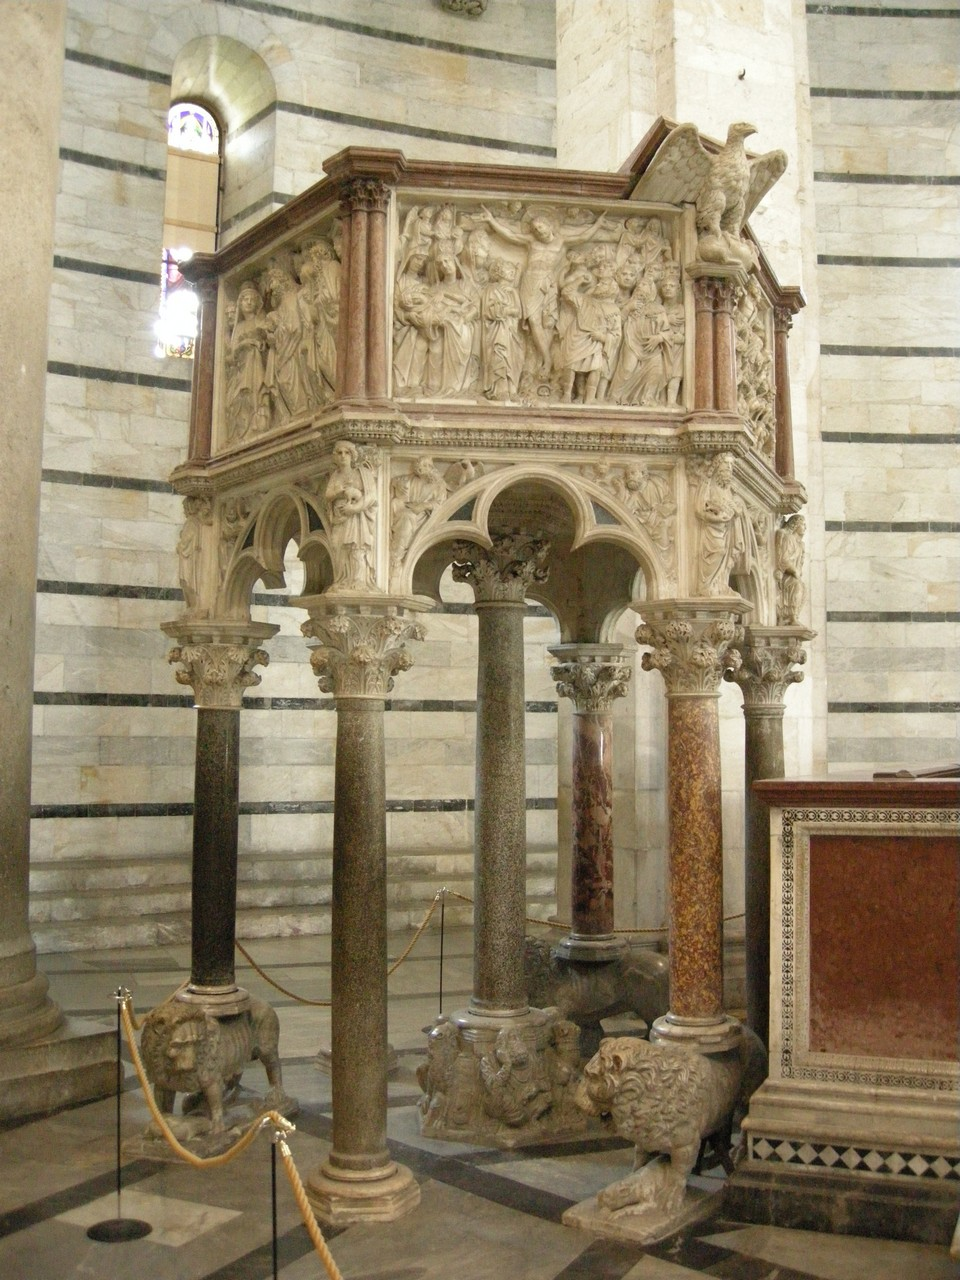 nicola pisano and the pisa pulpit File:pisa, battistero, pulpito di nicola pisano pulpit by nicola pisano in pisa, italy category:pisa category:nicola pisano.